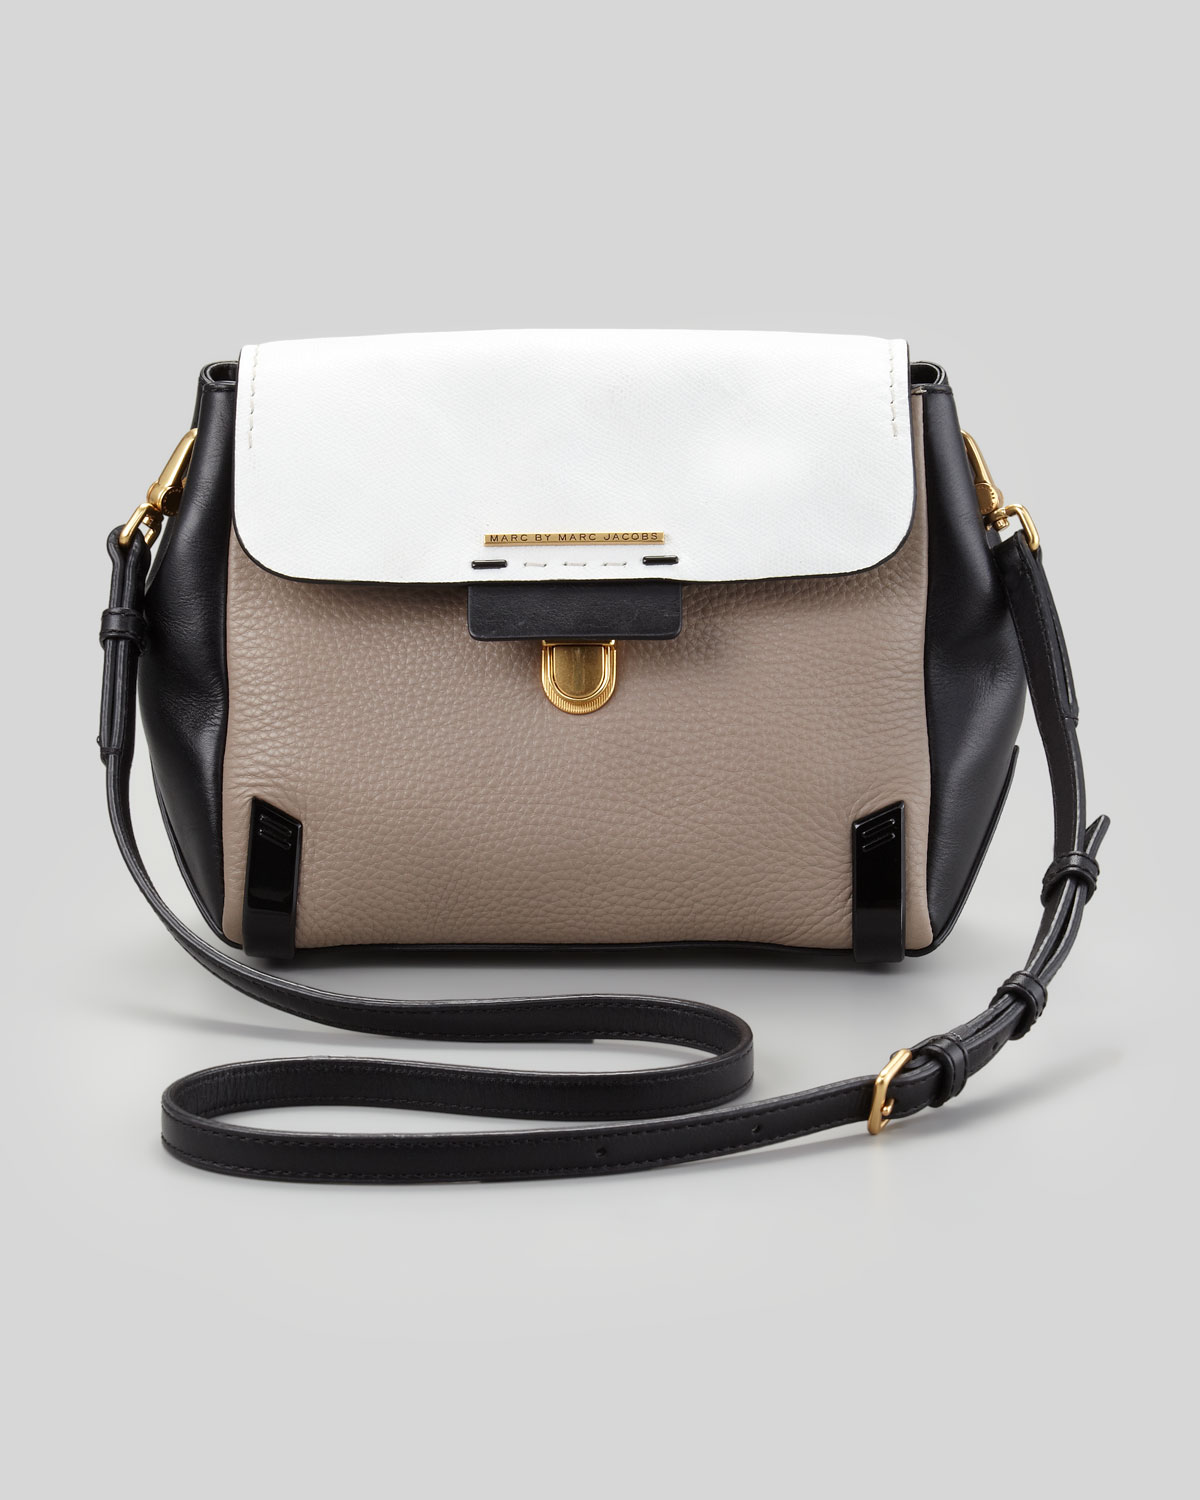 f2faf9eefd2f Marc By Marc Jacobs Sheltered Island Leather Cross-Body Bag - Lyst